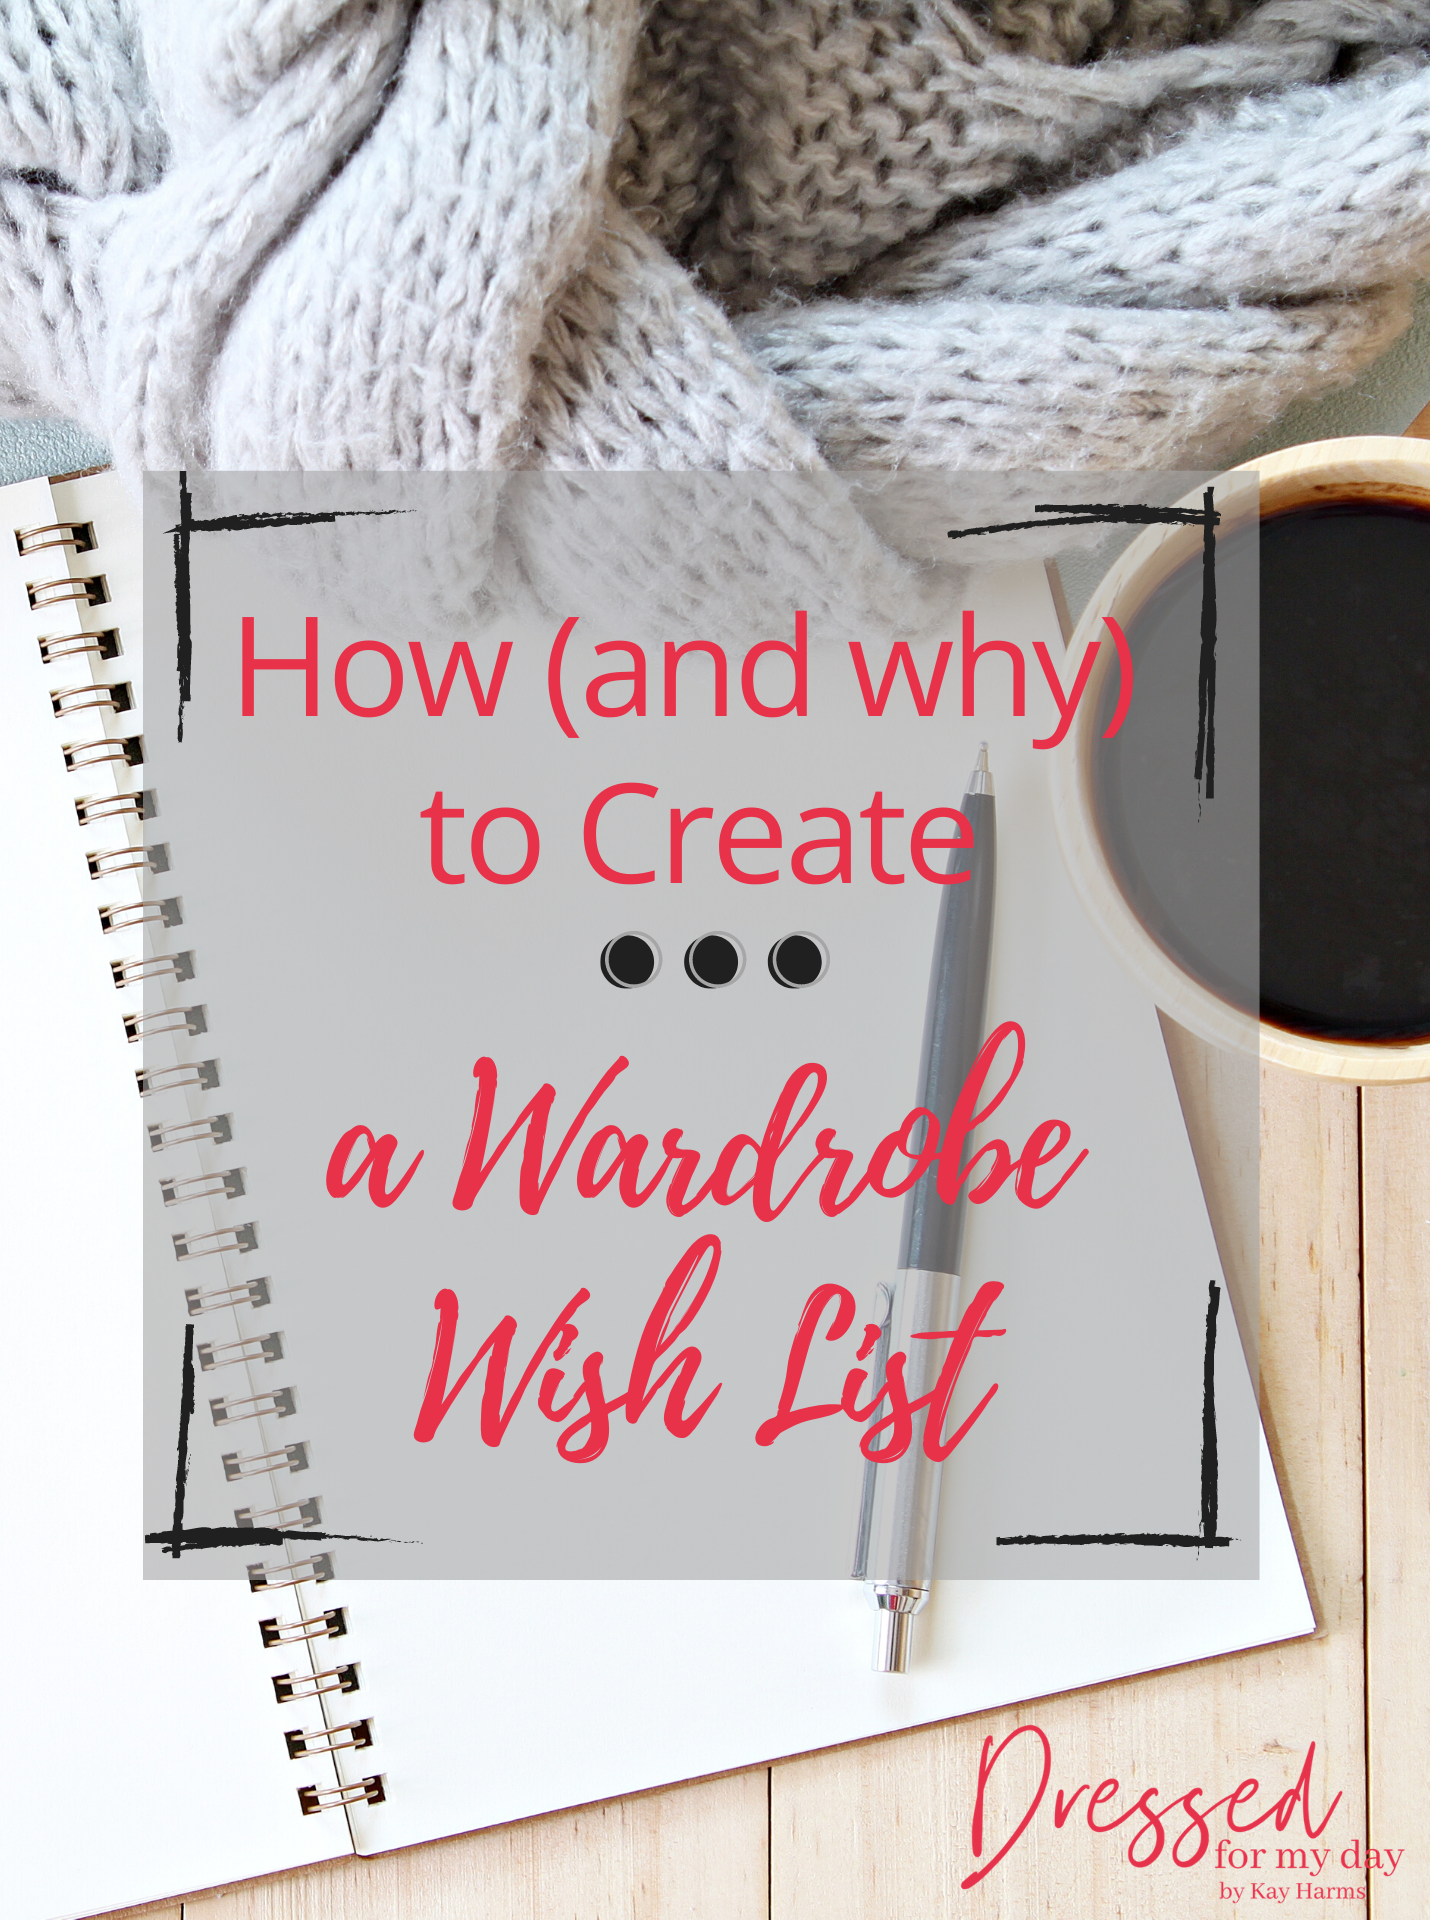 How (and why) to Create a Wardrobe Wish List